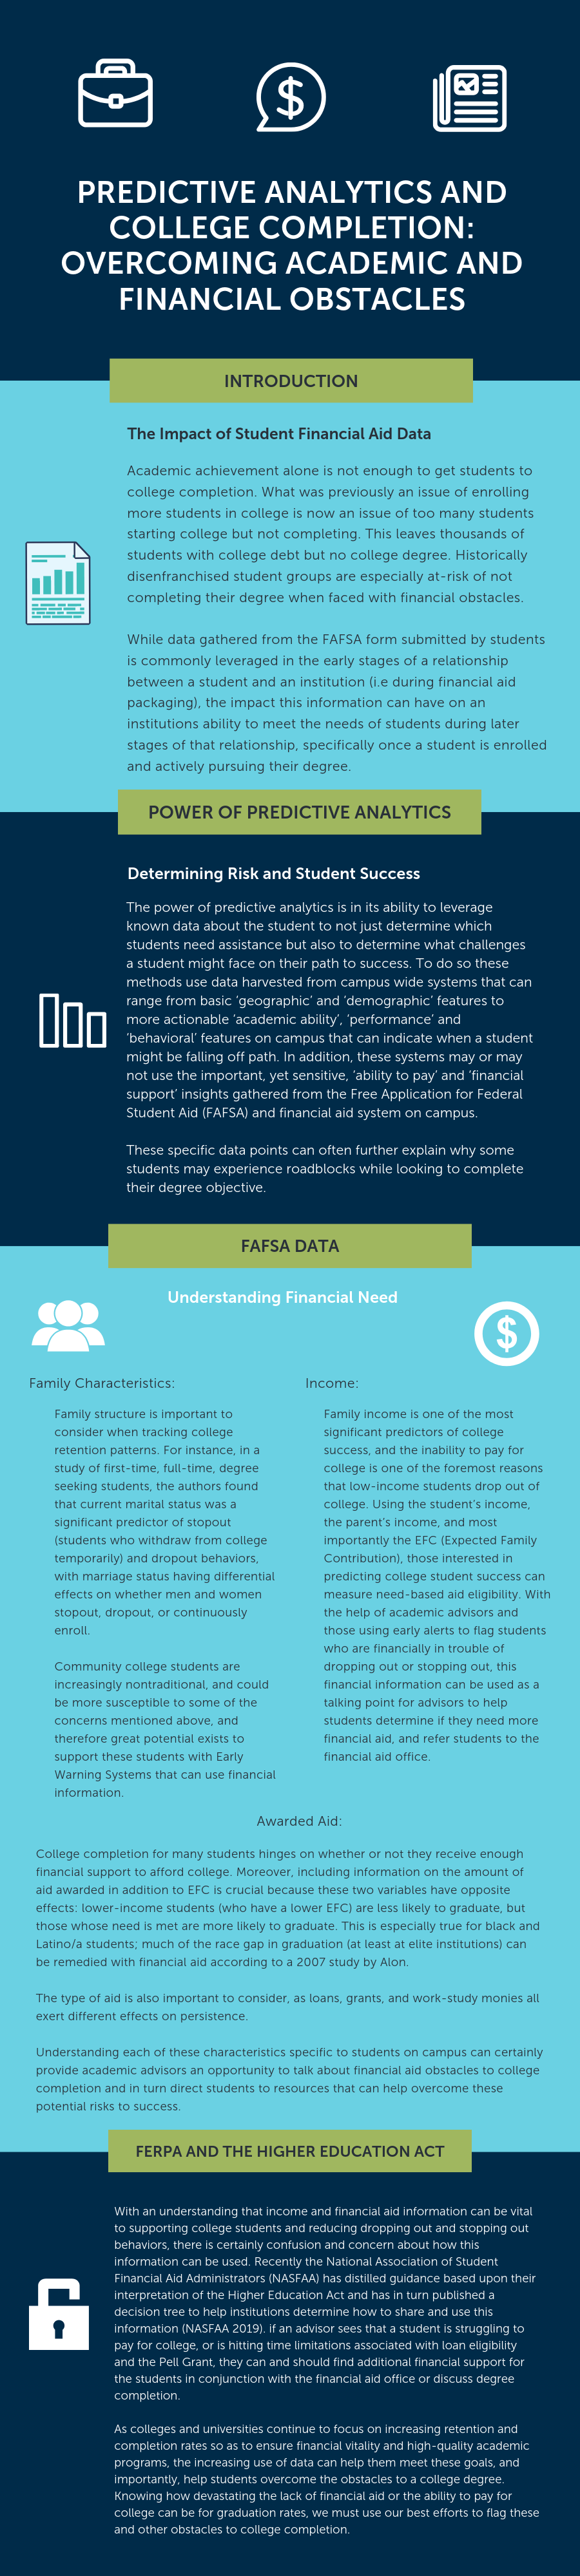 Financial Aid Infographic (1).png